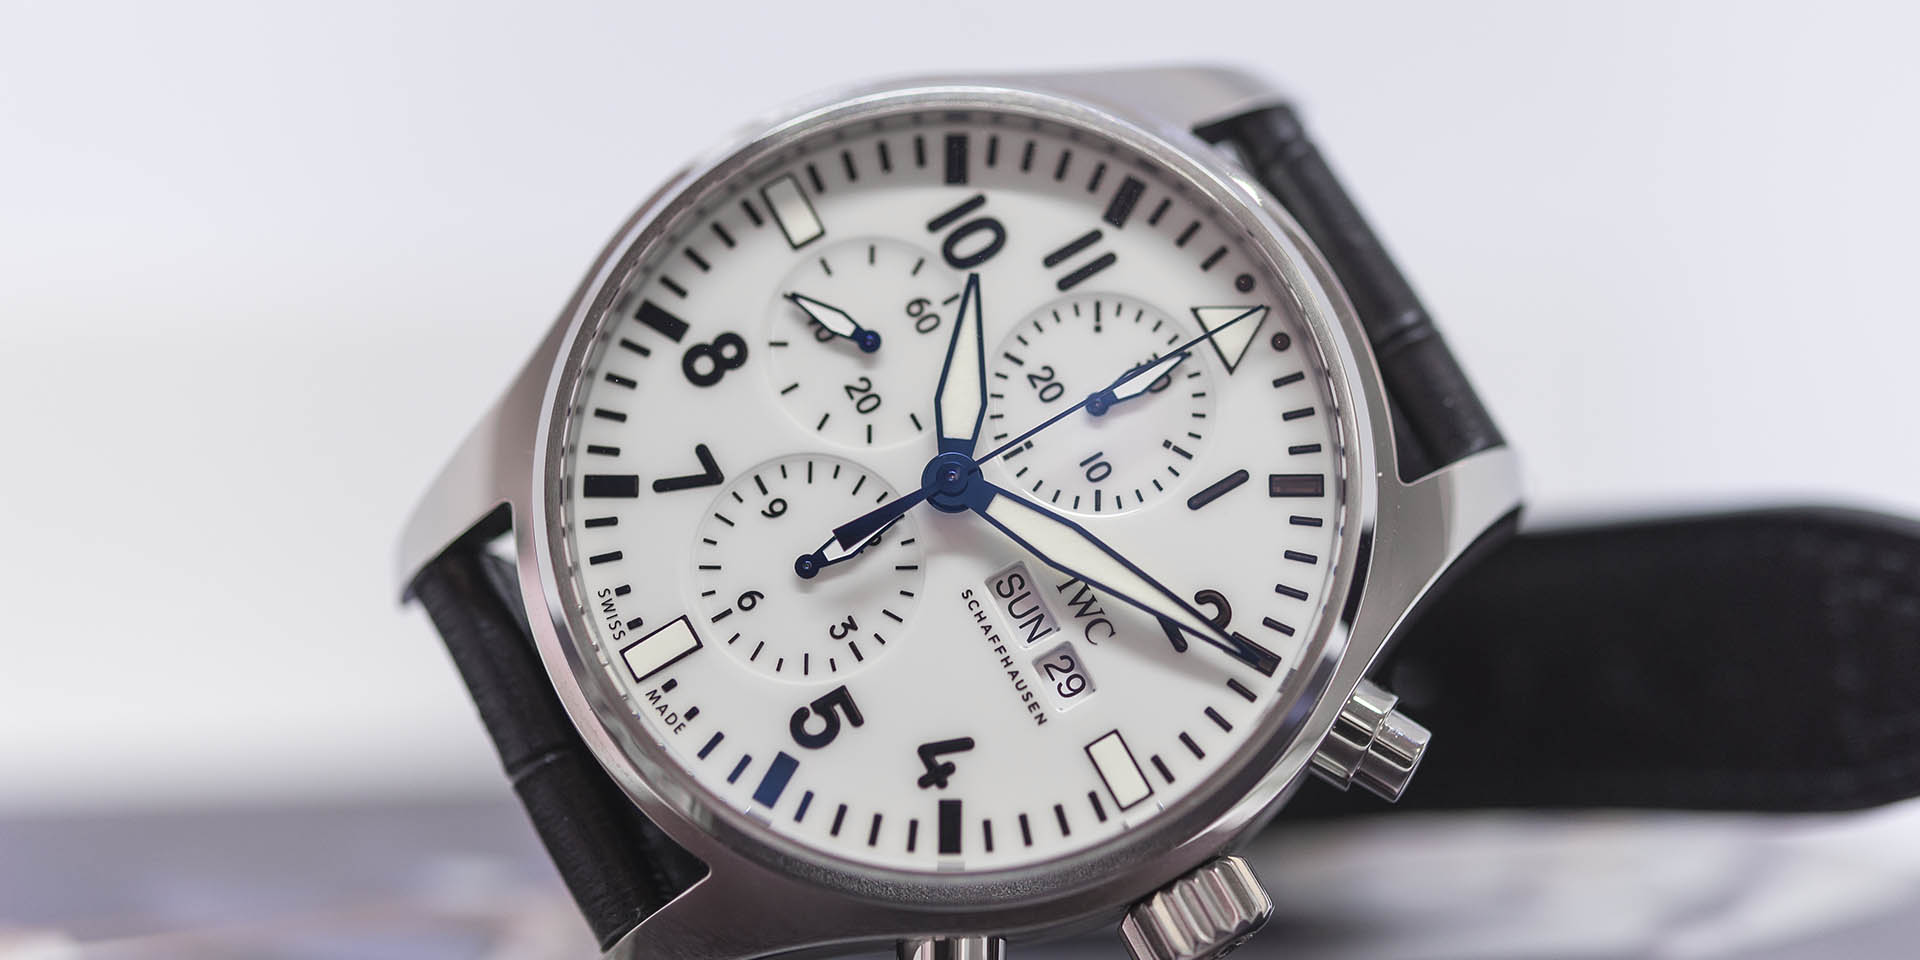 iw377725-iwc-pilots-watch-chronograph-150-3.jpg